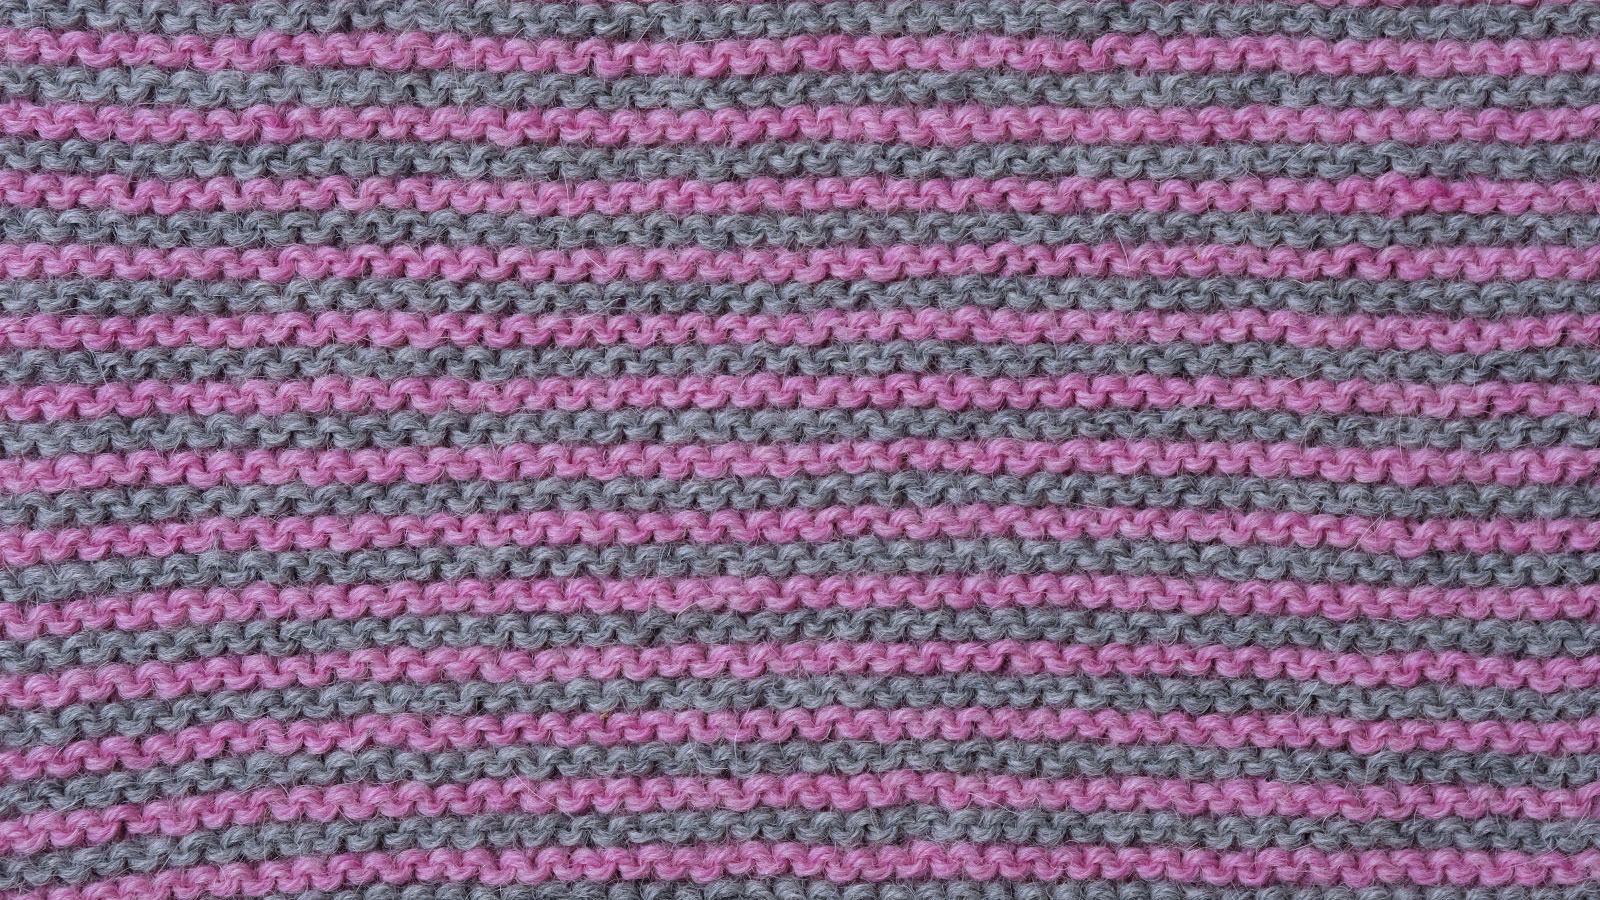 two color garter stitch right side